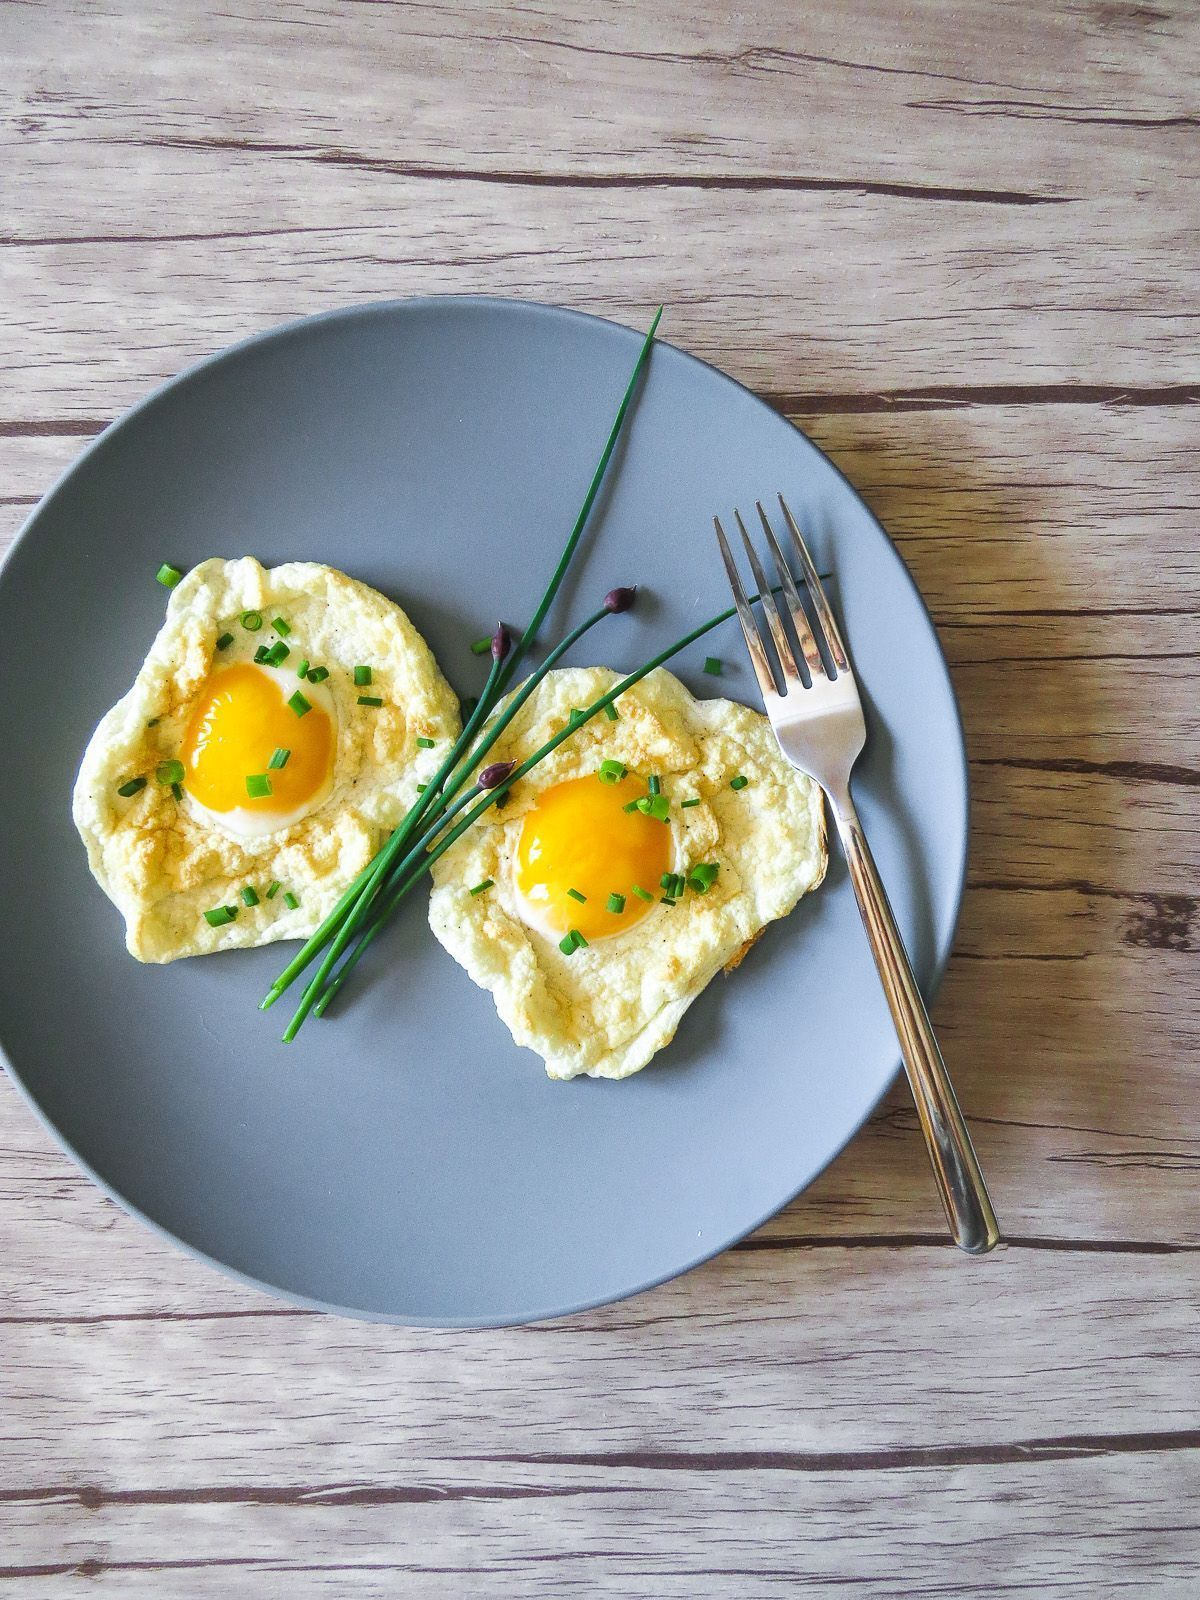 Cloud Eggs #cloudeggs Cloud Eggs - The latest breakfast egg trend! Cloud eggs or eggs in clouds are super customizable and so easy to make! Perfect for brunch for one, a couple or many! #cloudeggs Cloud Eggs #cloudeggs Cloud Eggs - The latest breakfast egg trend! Cloud eggs or eggs in clouds are super customizable and so easy to make! Perfect for brunch for one, a couple or many! #cloud Eggs #cloudeggs